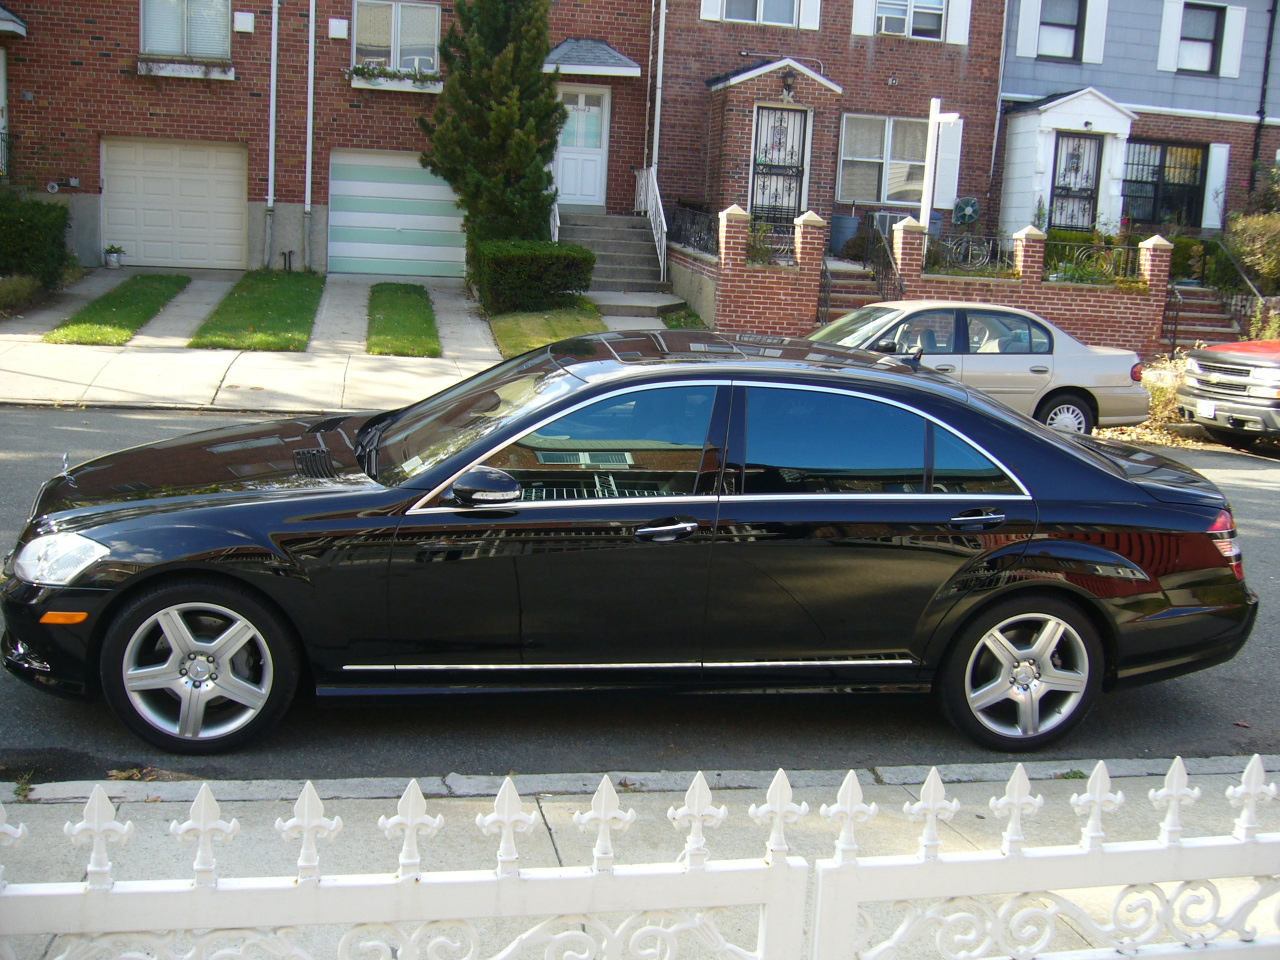 2007 mercedes benz s class pictures cargurus for Mercedes benz s550 4matic 2010